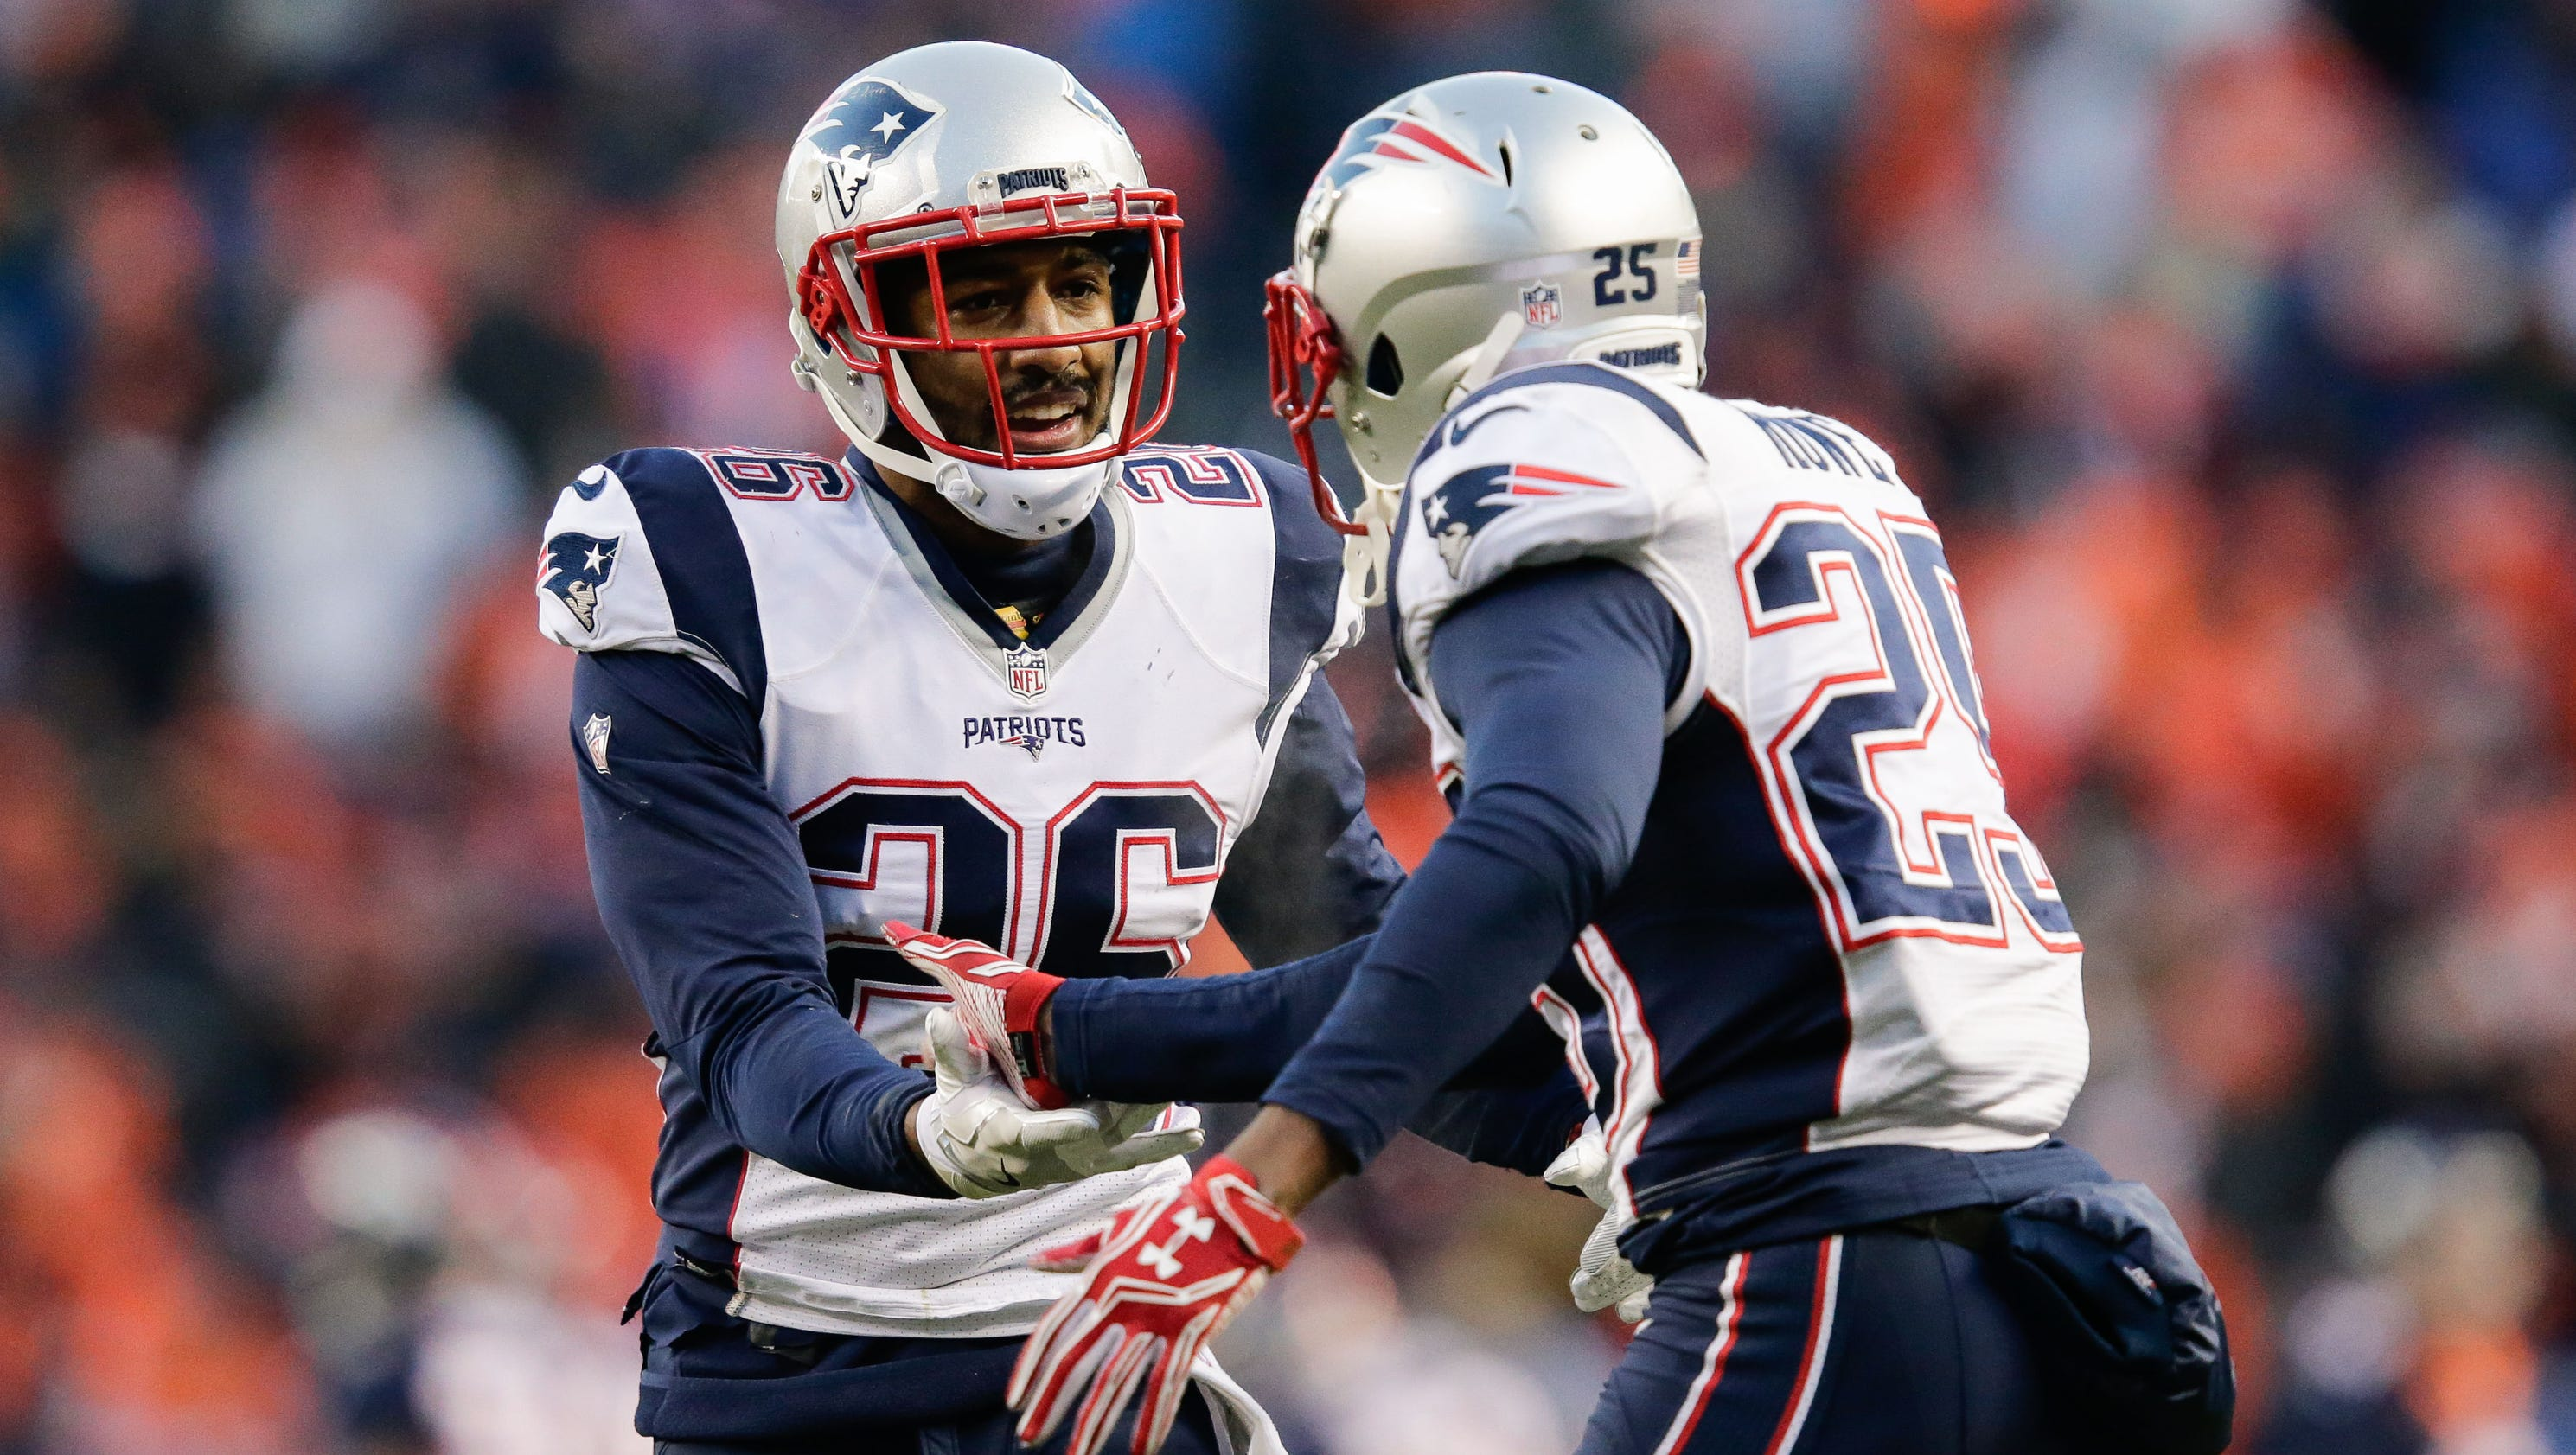 NFL Week 15 overreactions: Is Patriots defense now leagues best?